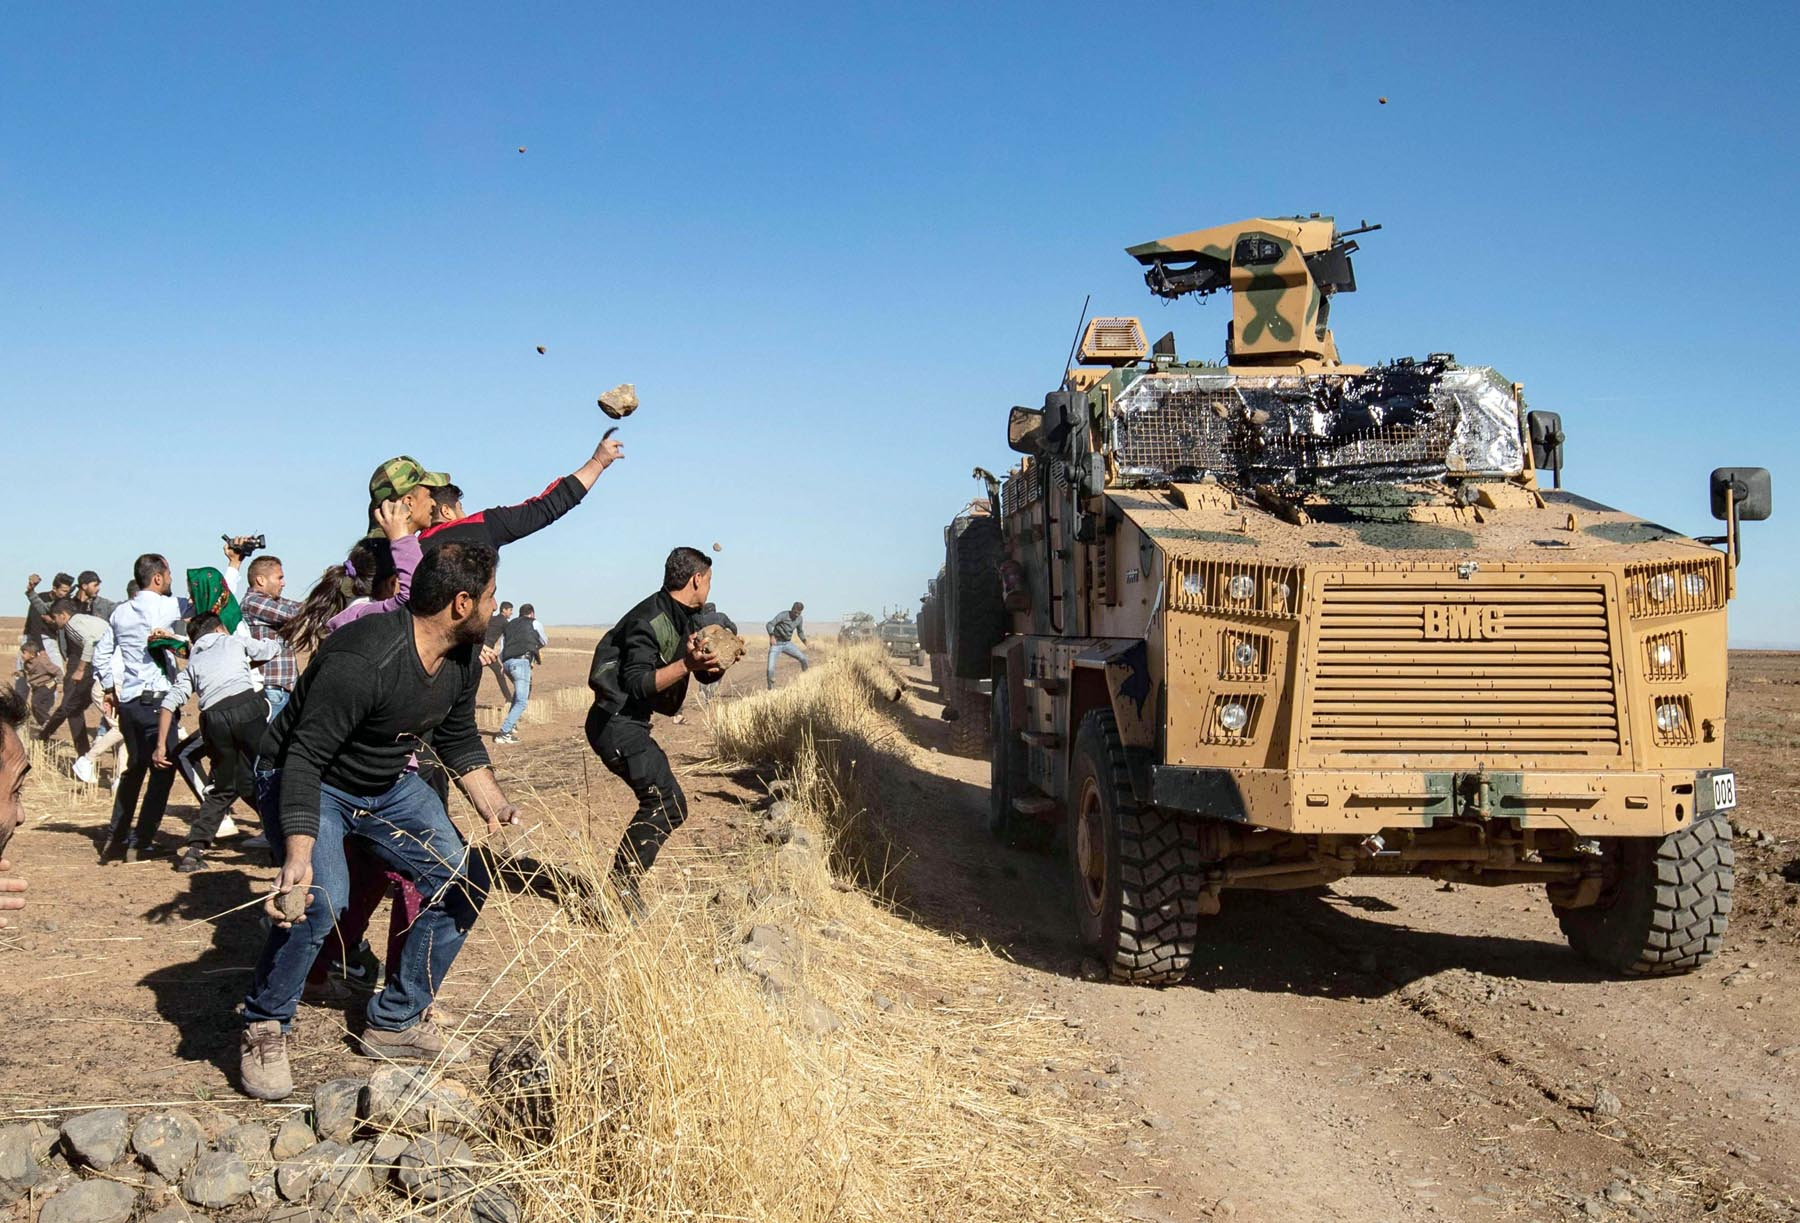 Kurdish demonstrators hurl rocks at a Turkish military vehicle during a joint Turkish-Russian patrol near the town of Al-Muabbadah in the north-eastern part of Hasakah on the Syrian border with Turkey, November 8. (AFP)